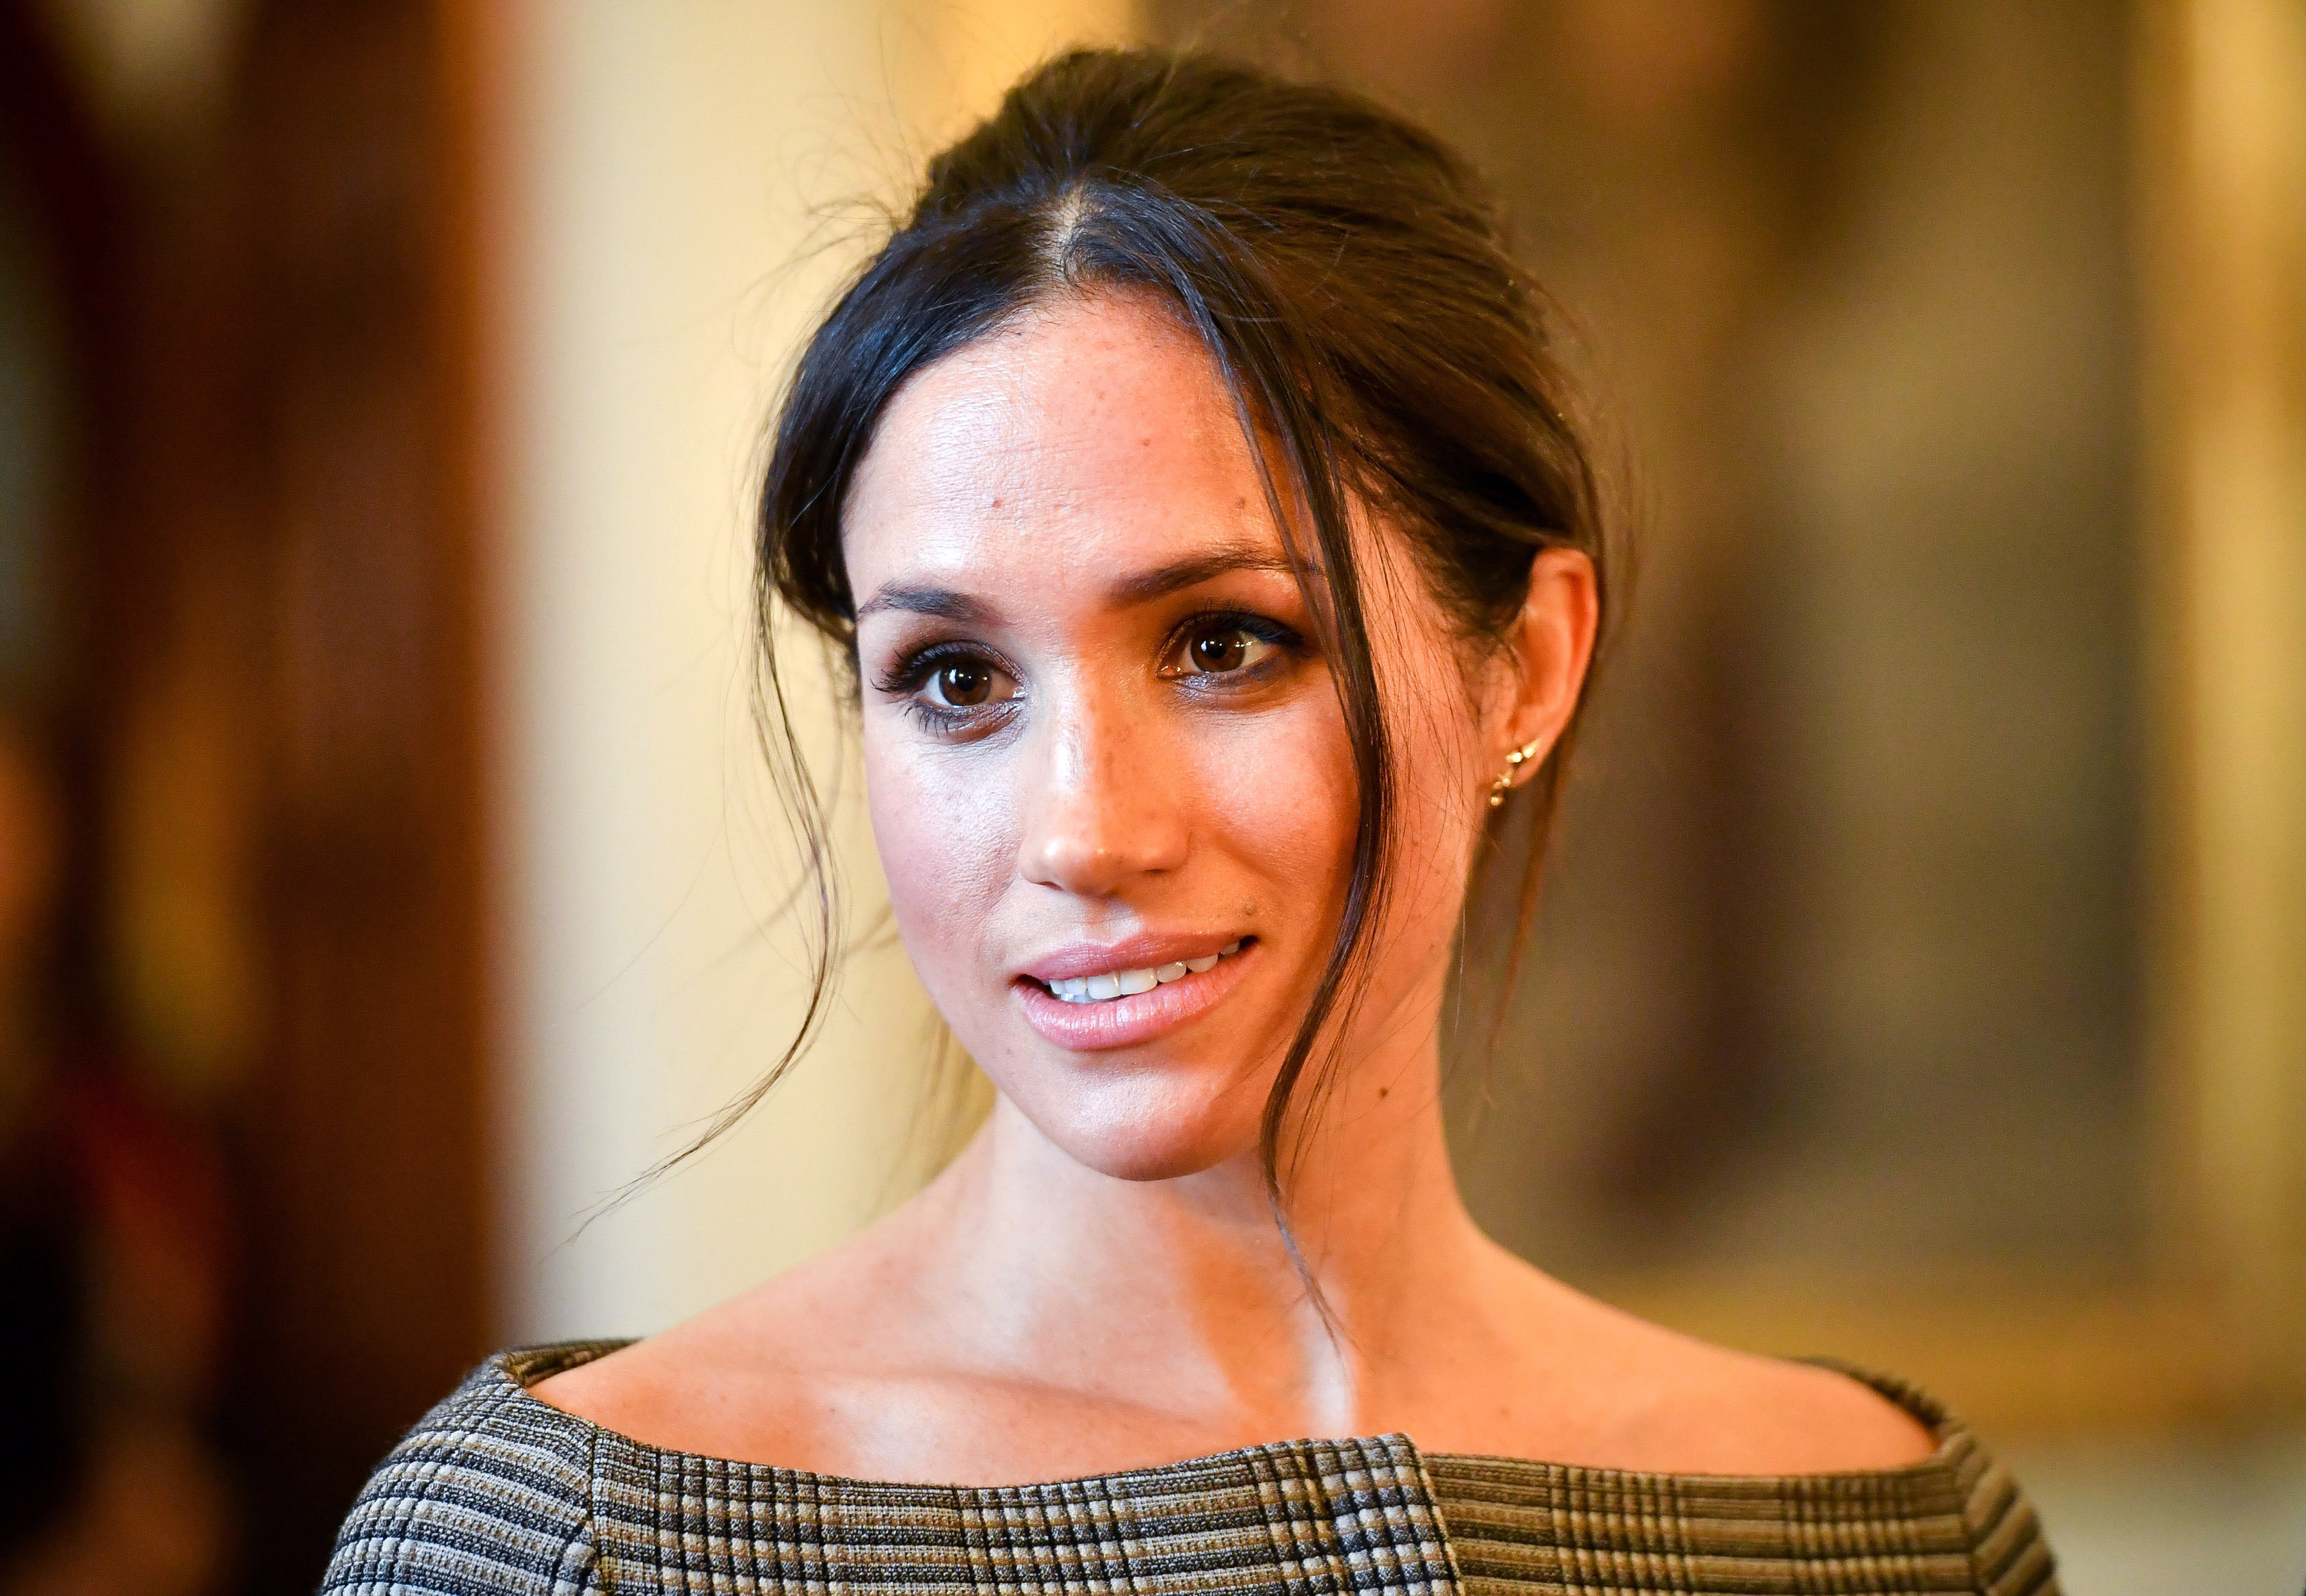 Yes, the UK media's coverage of Meghan Markle really is racist